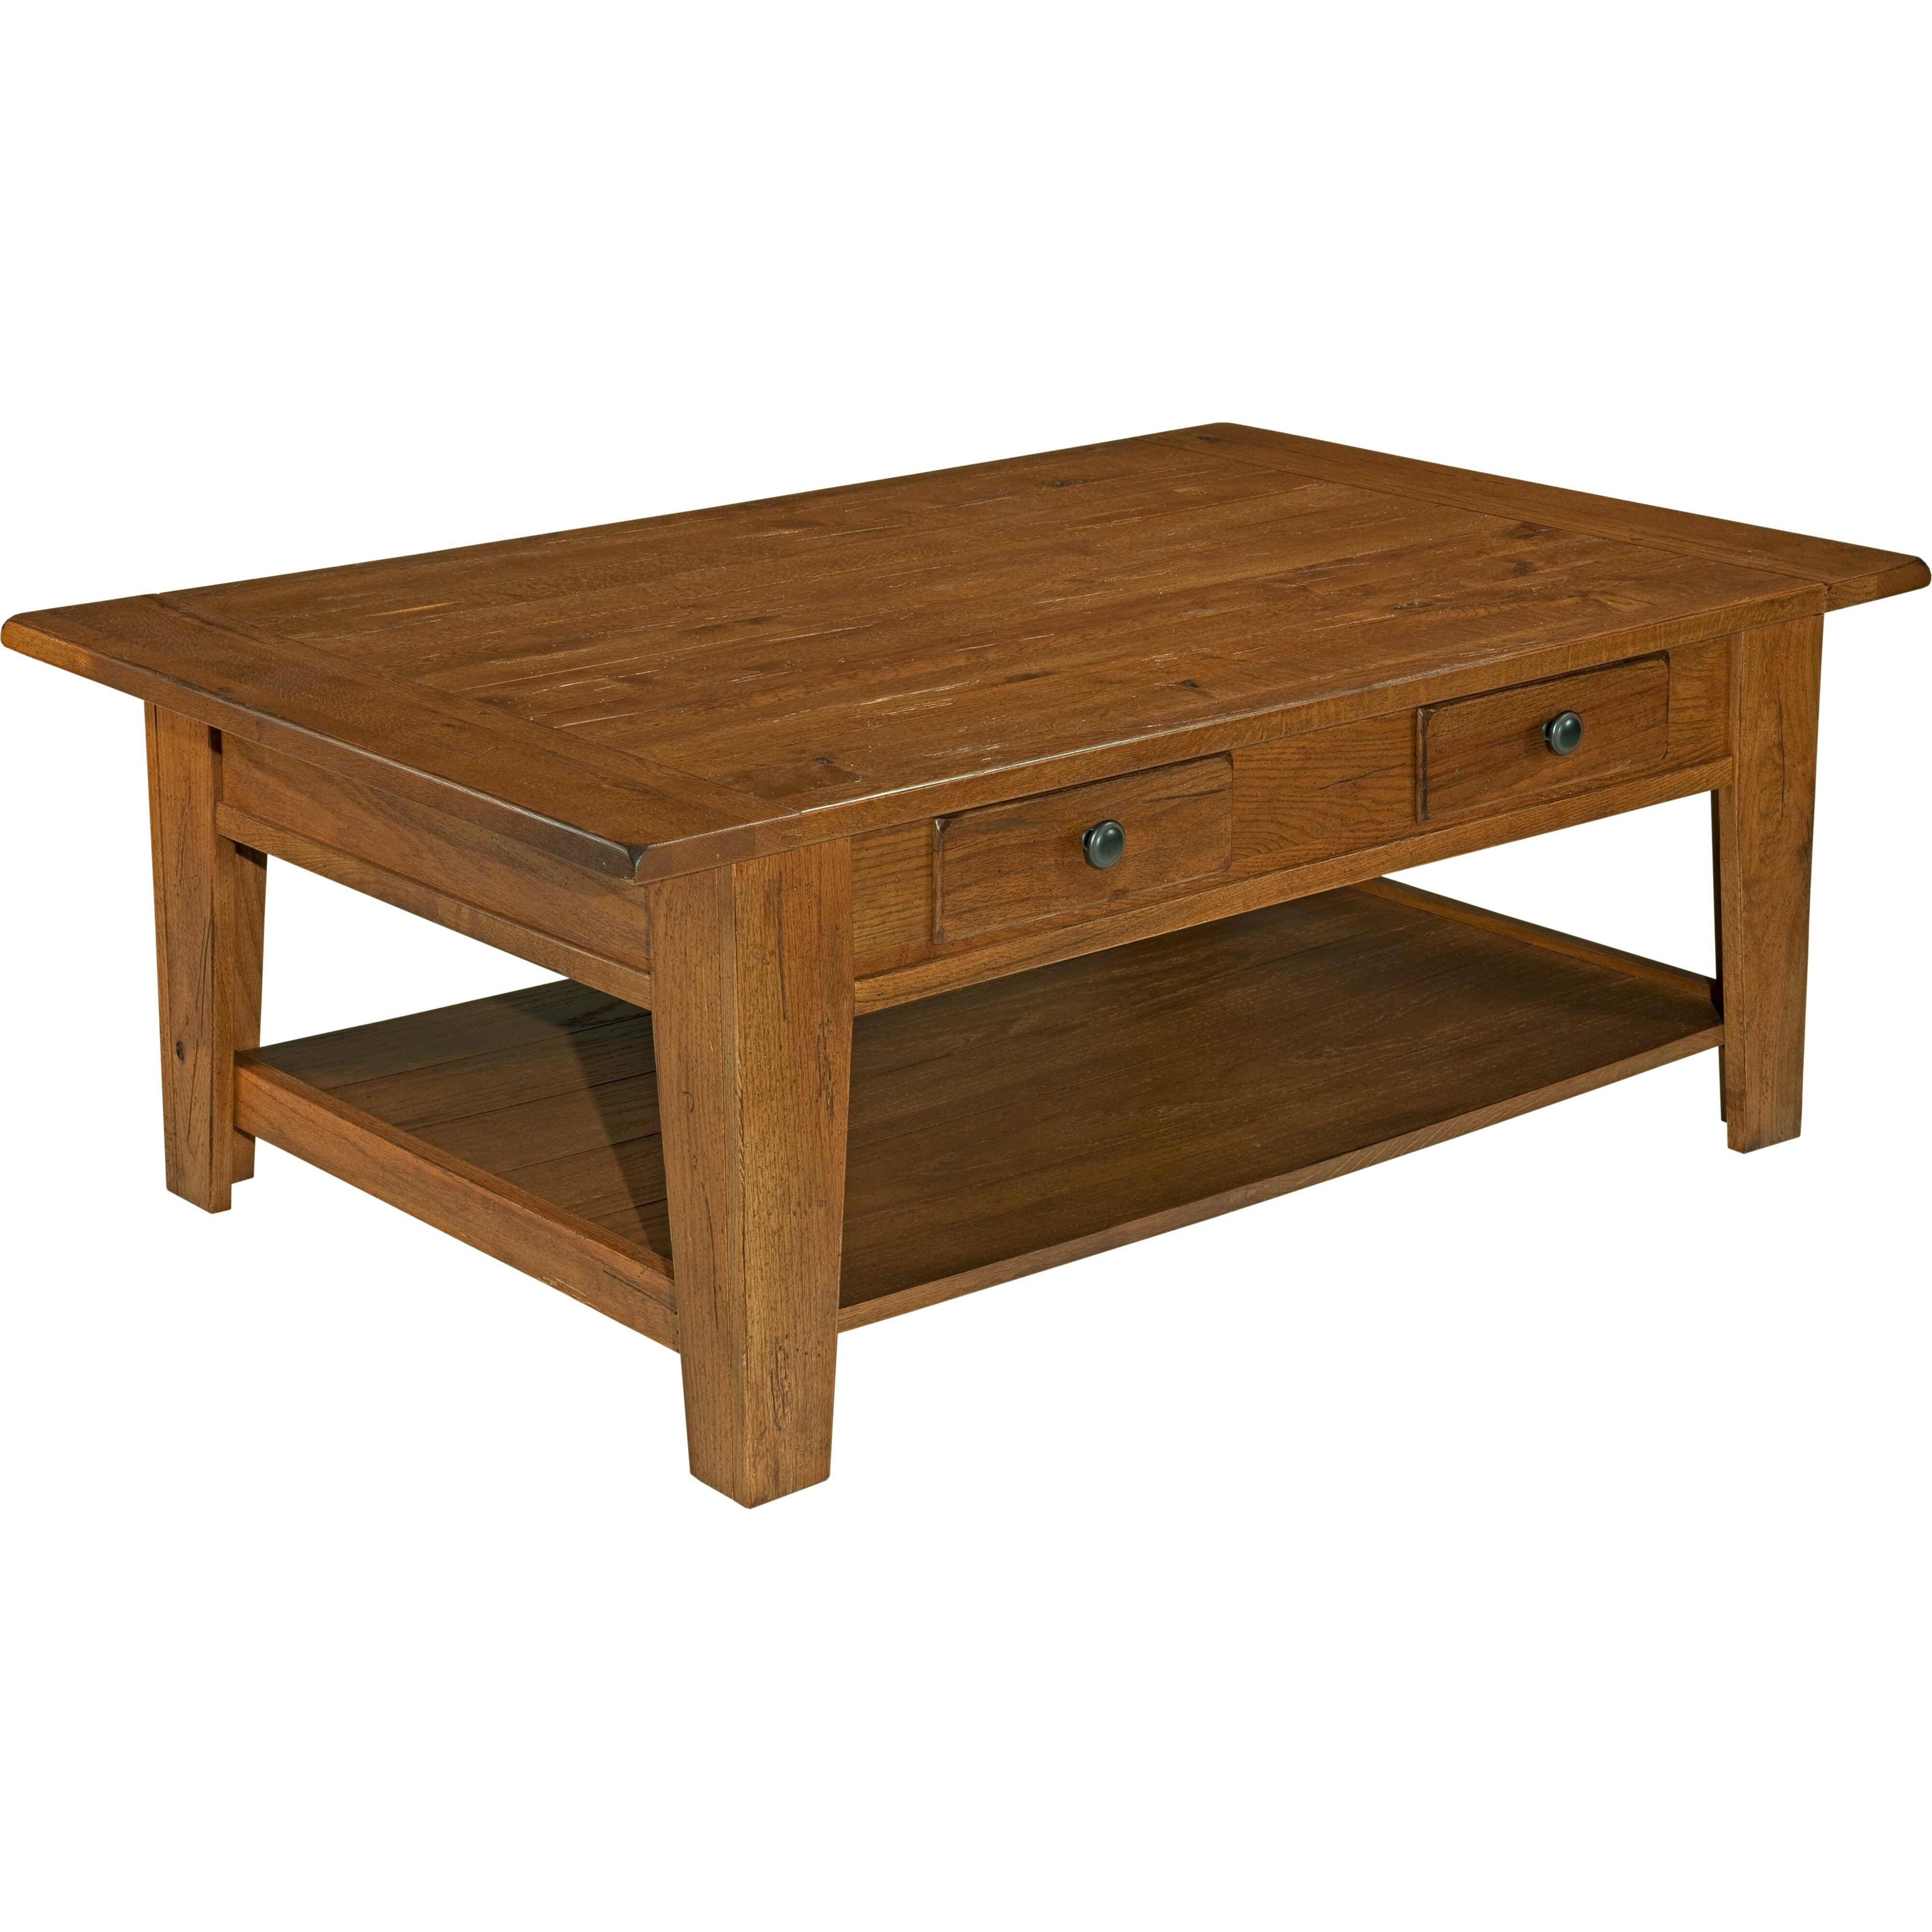 Attic Heirlooms Coffee Table Wayfair